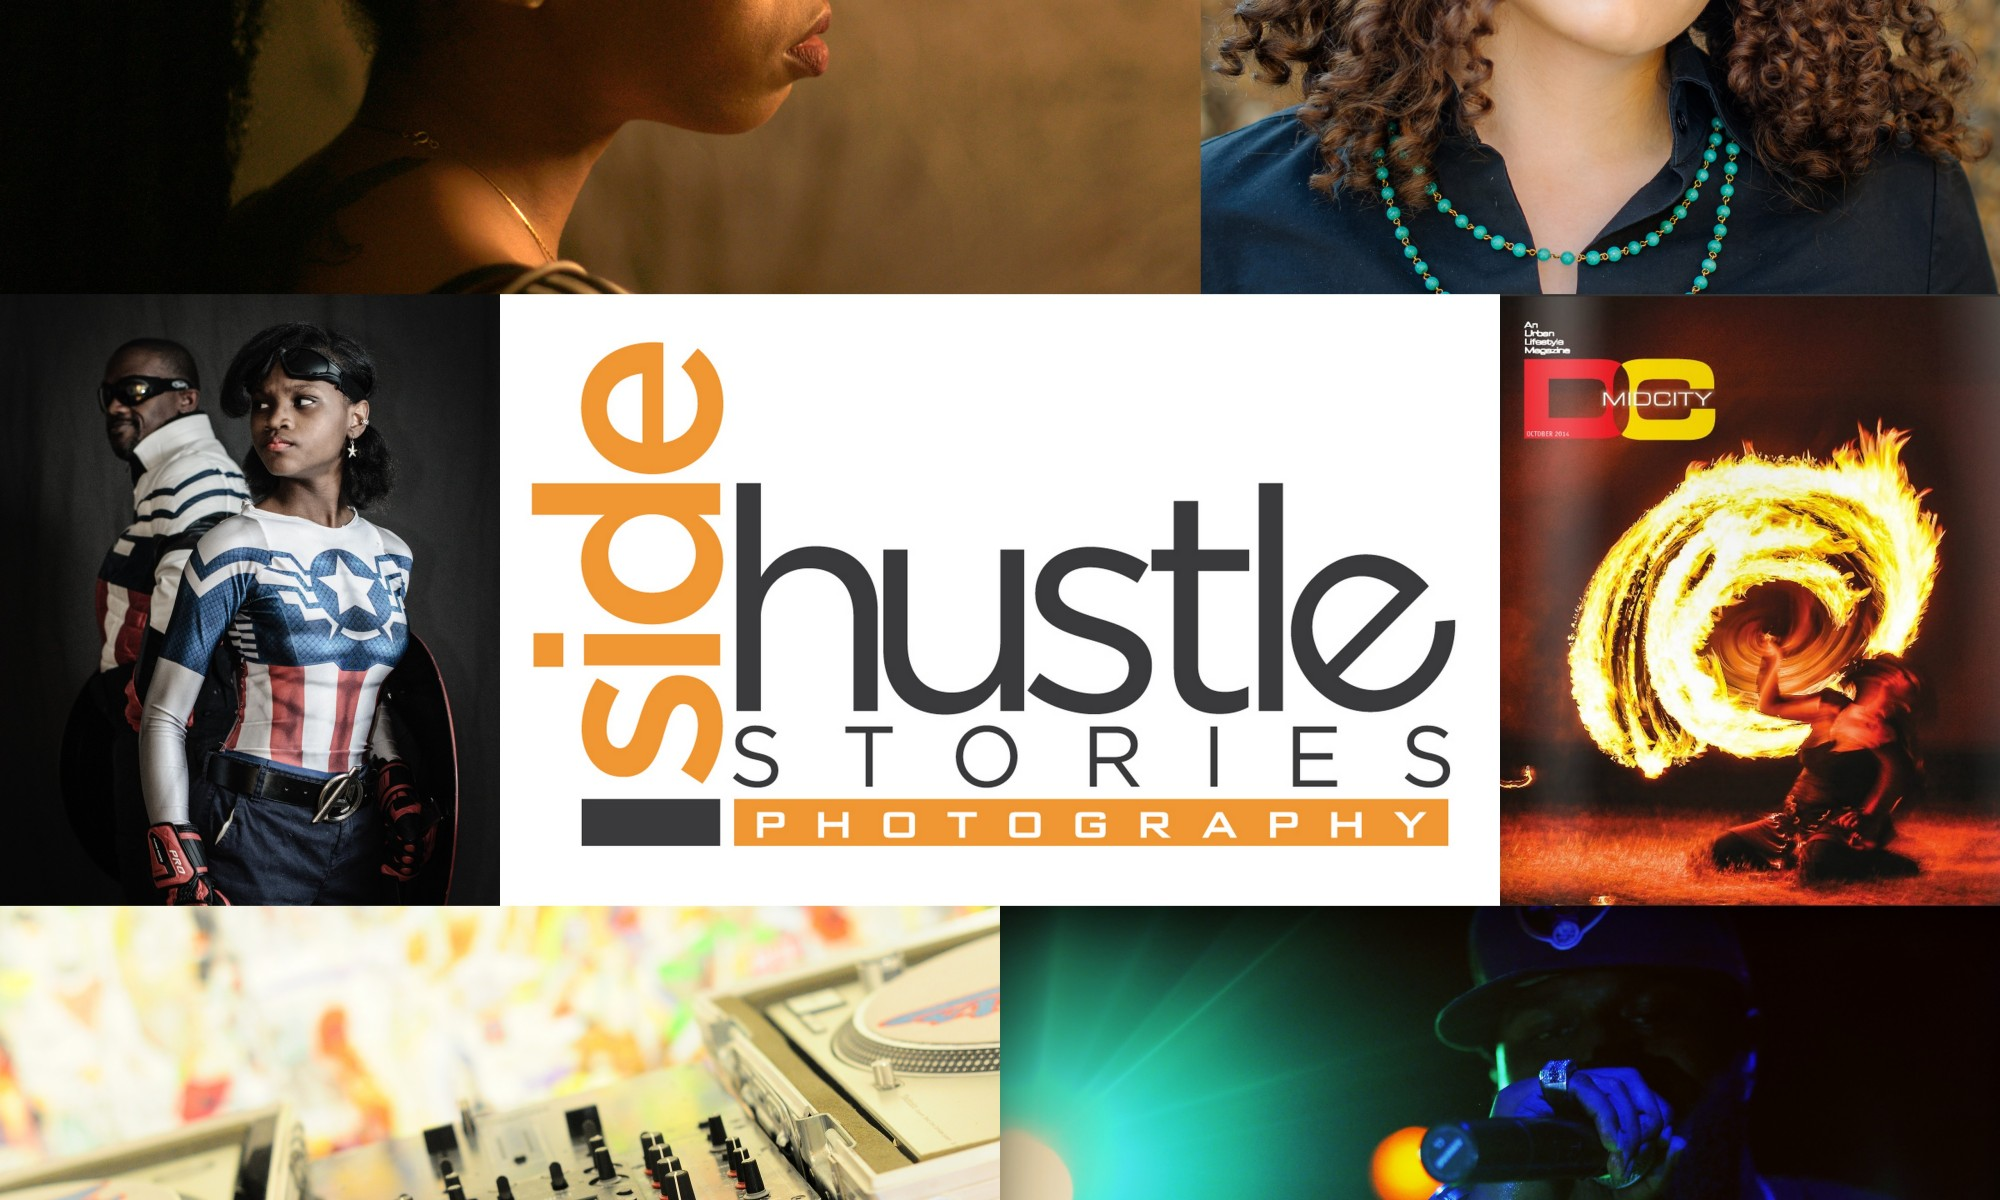 selection of photos with the Side Hustle Stories Photography logo in the center